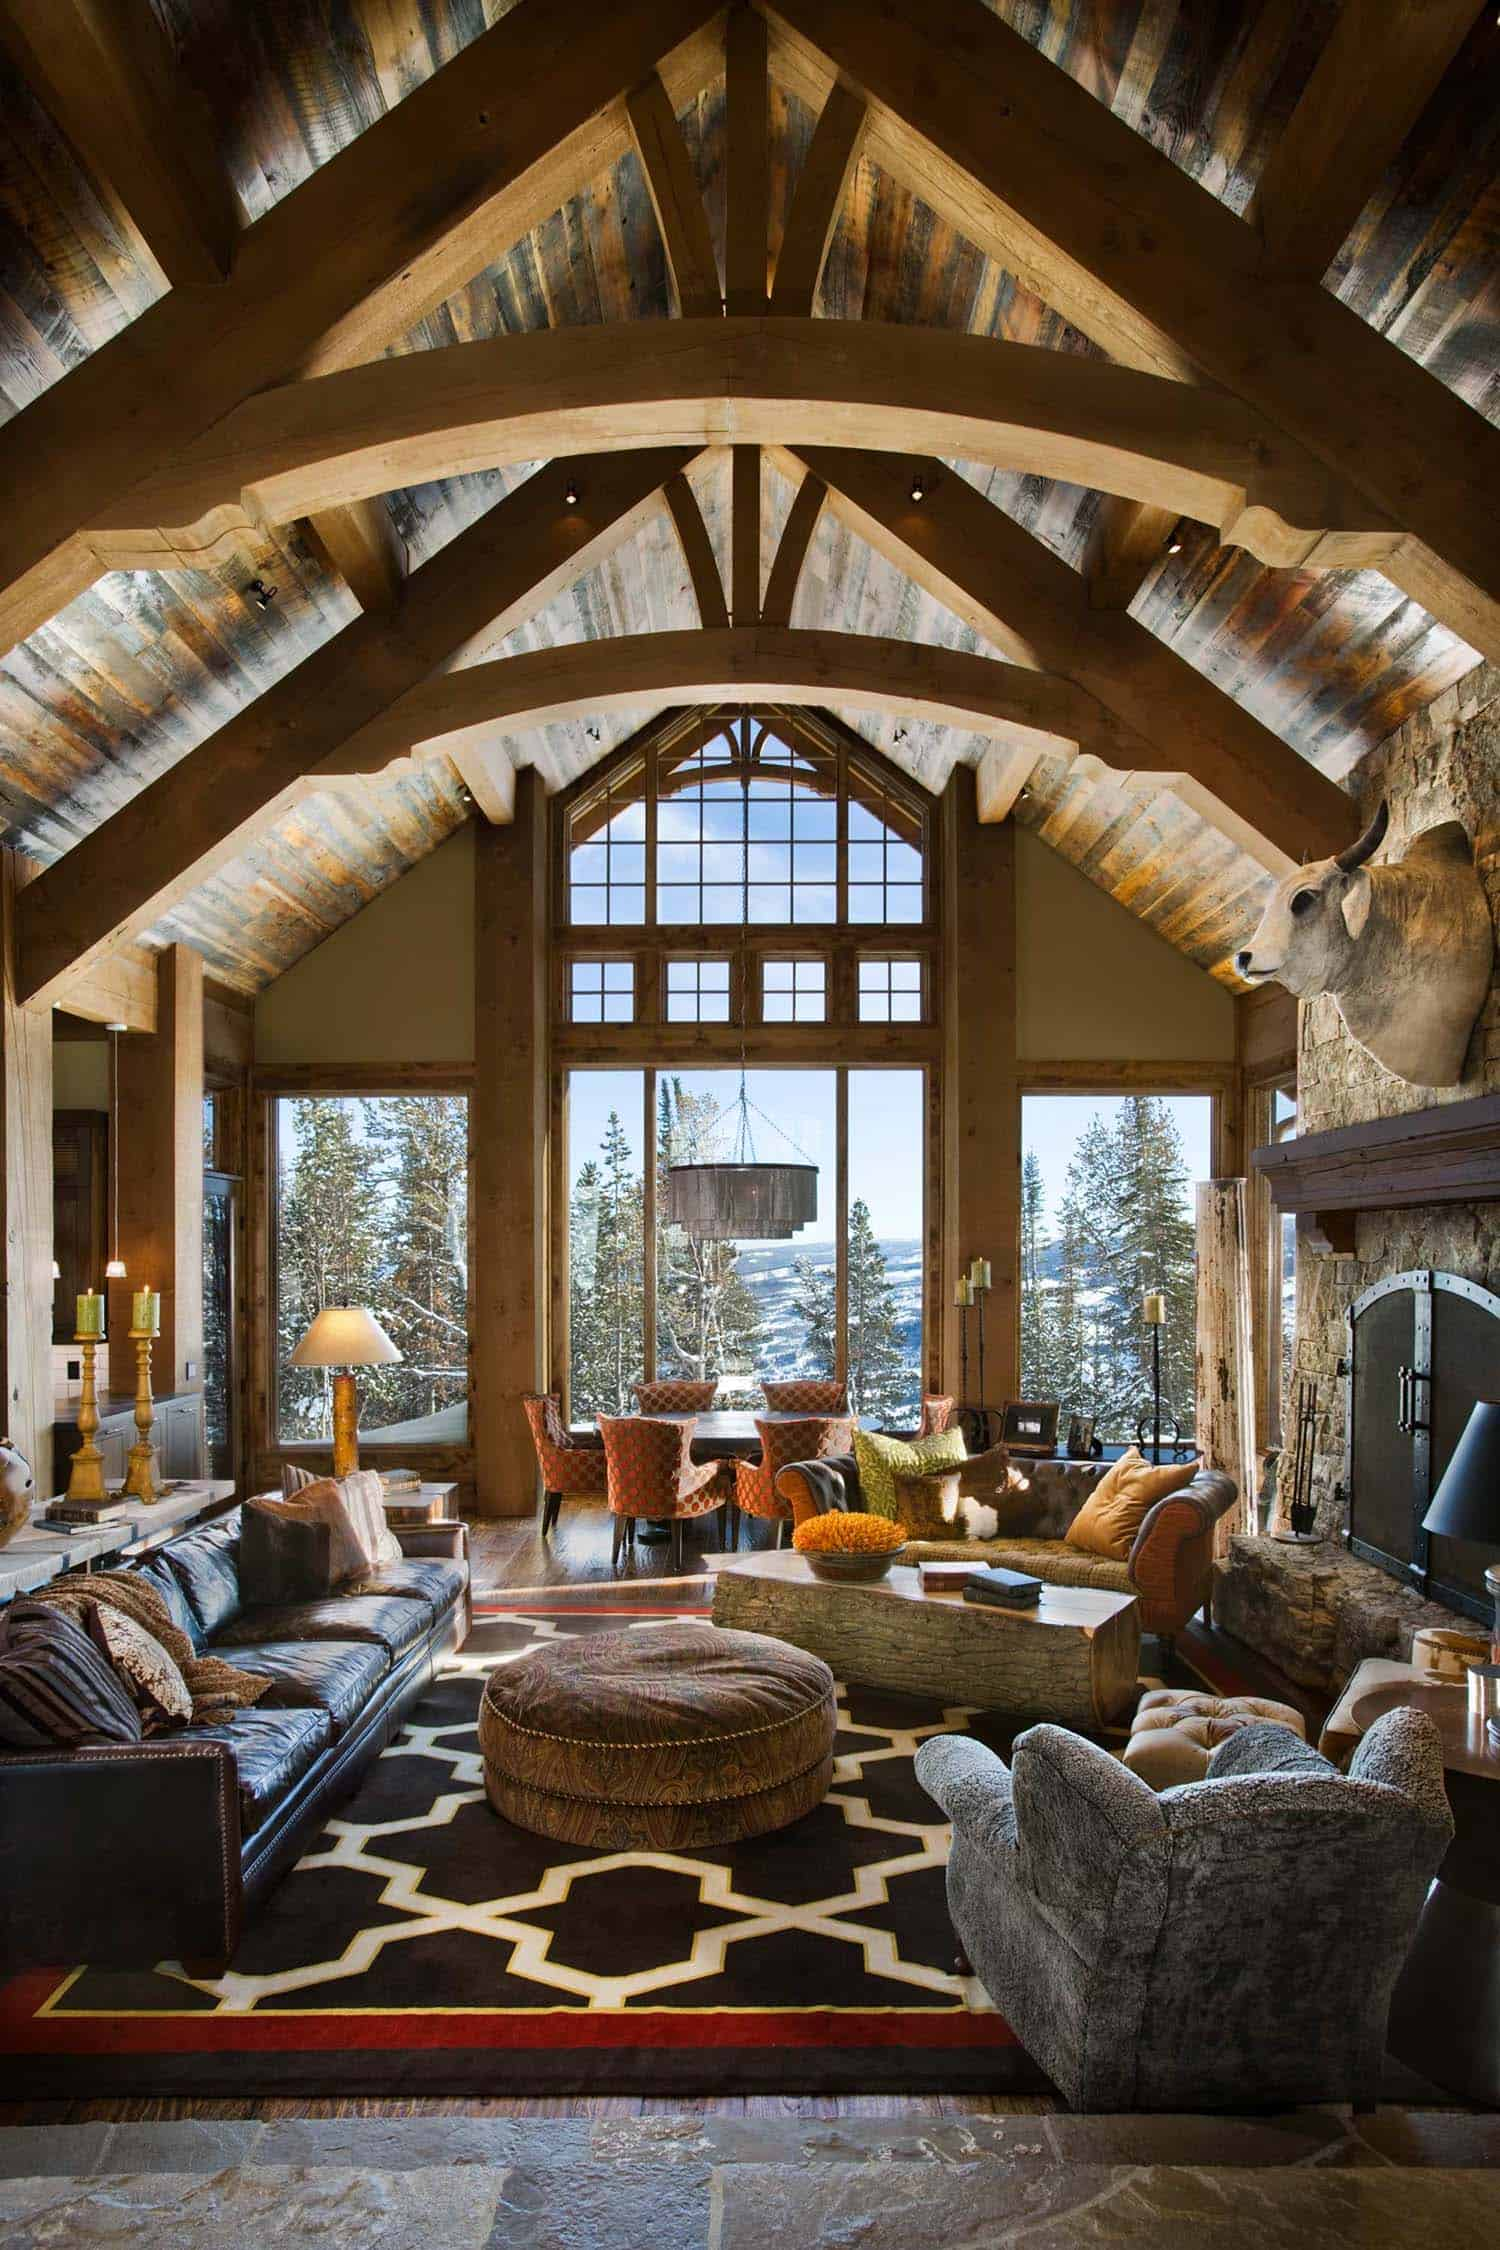 Enchanting modern-rustic dwelling in the rugged mountains ...